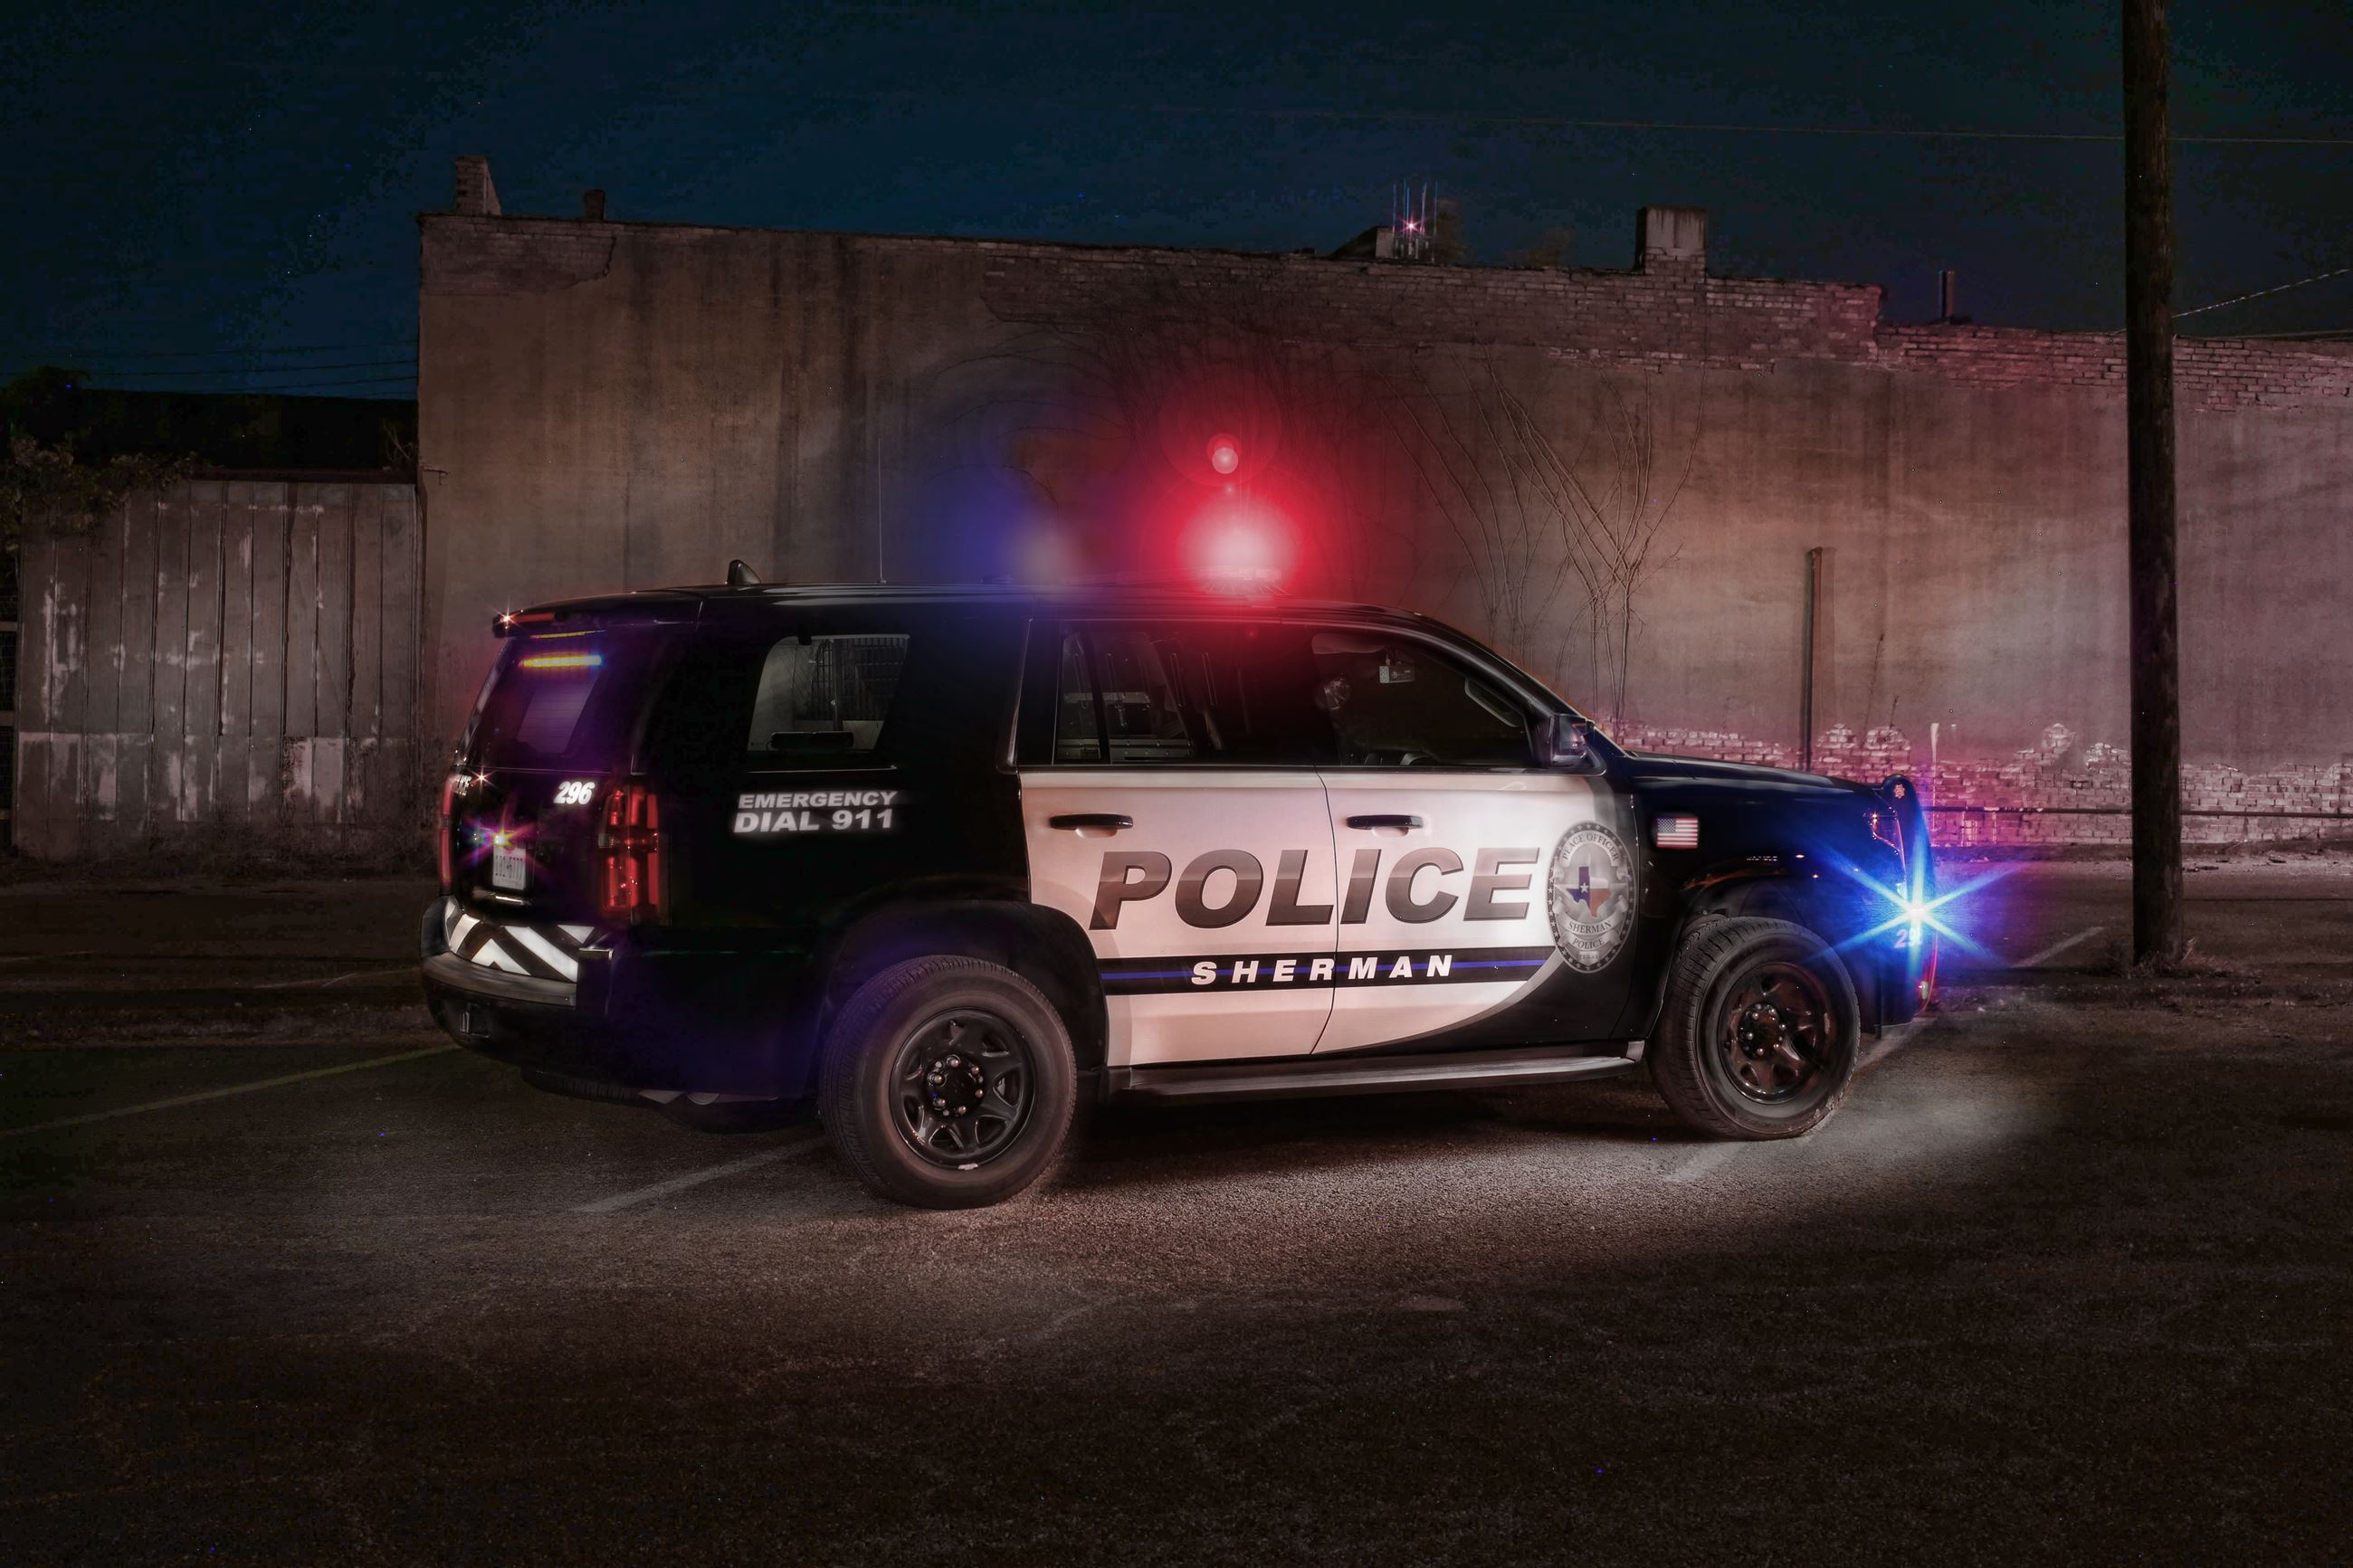 Police | Sherman, TX - Official Website